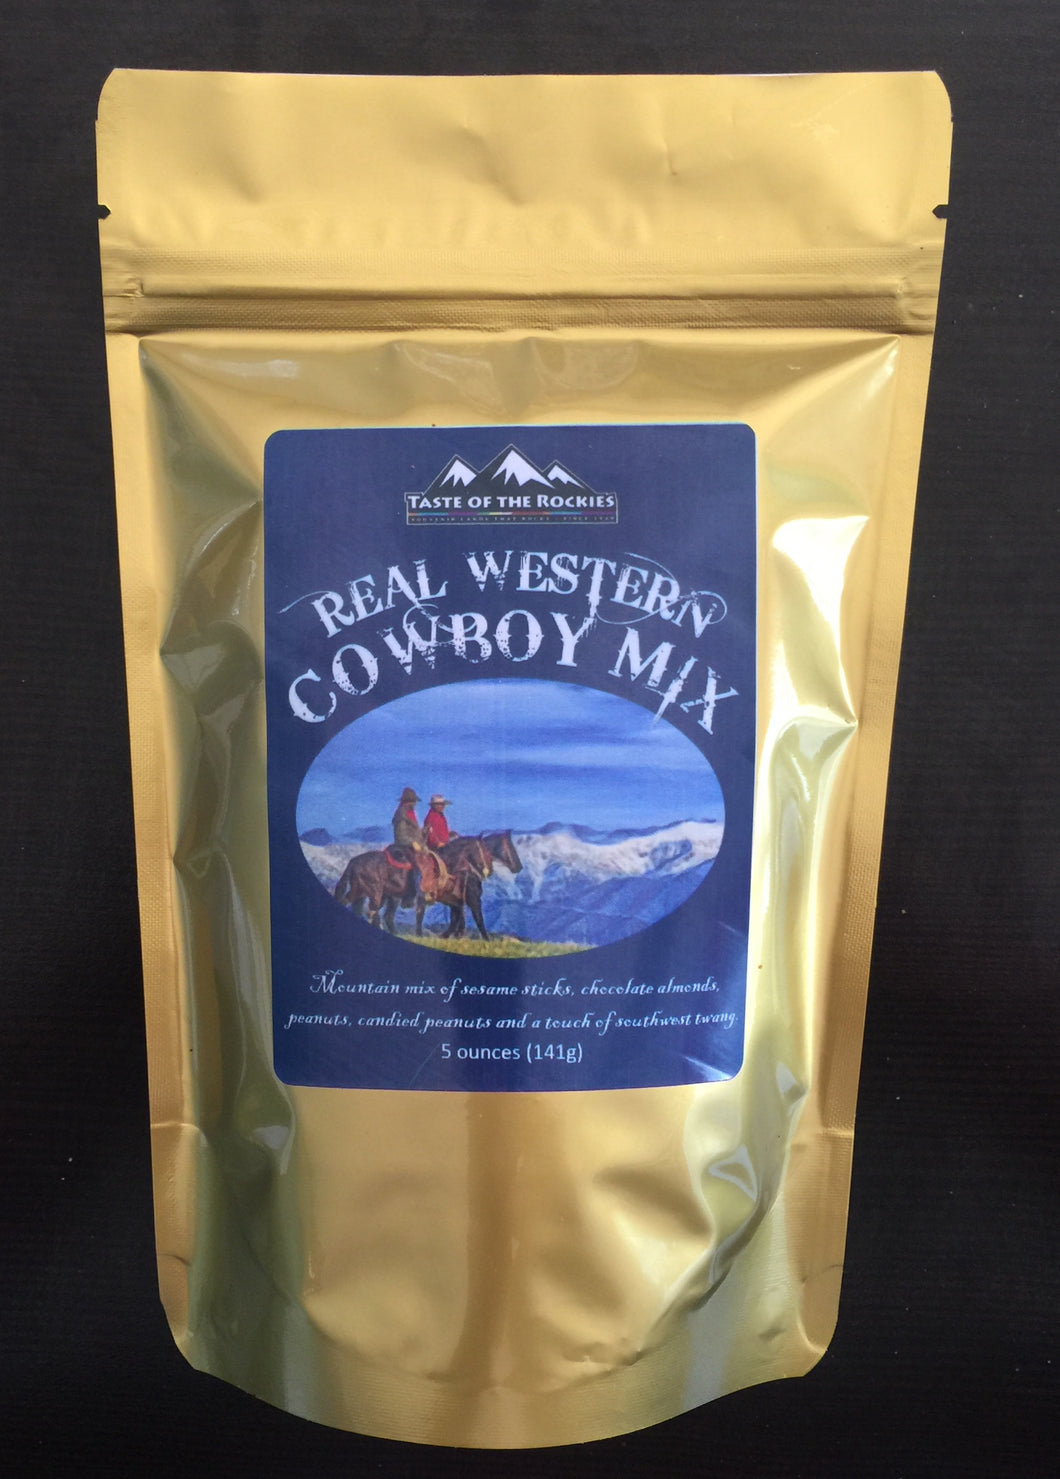 Western Cowboy Mix - Taste Of The Rockies